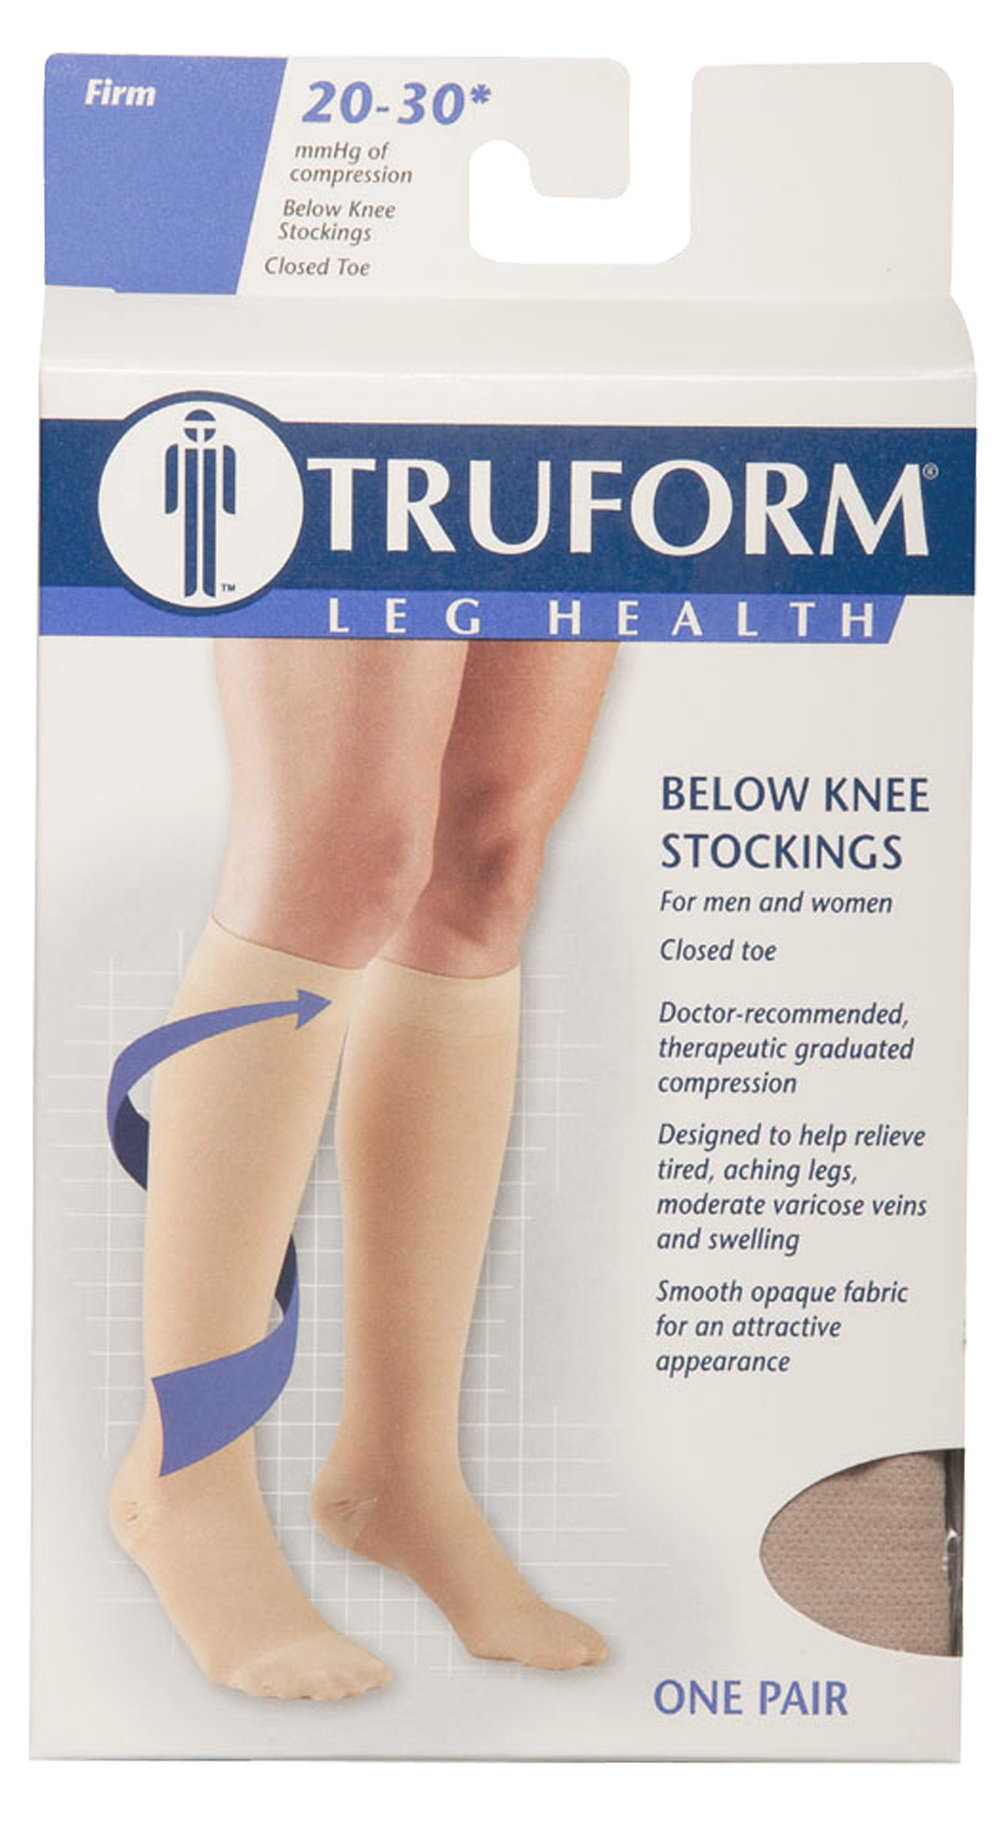 8865 / KNEE HIGH - SOFT TOP, CLOSED TOE / 20-30 MMHG PACKAGING IMAGE